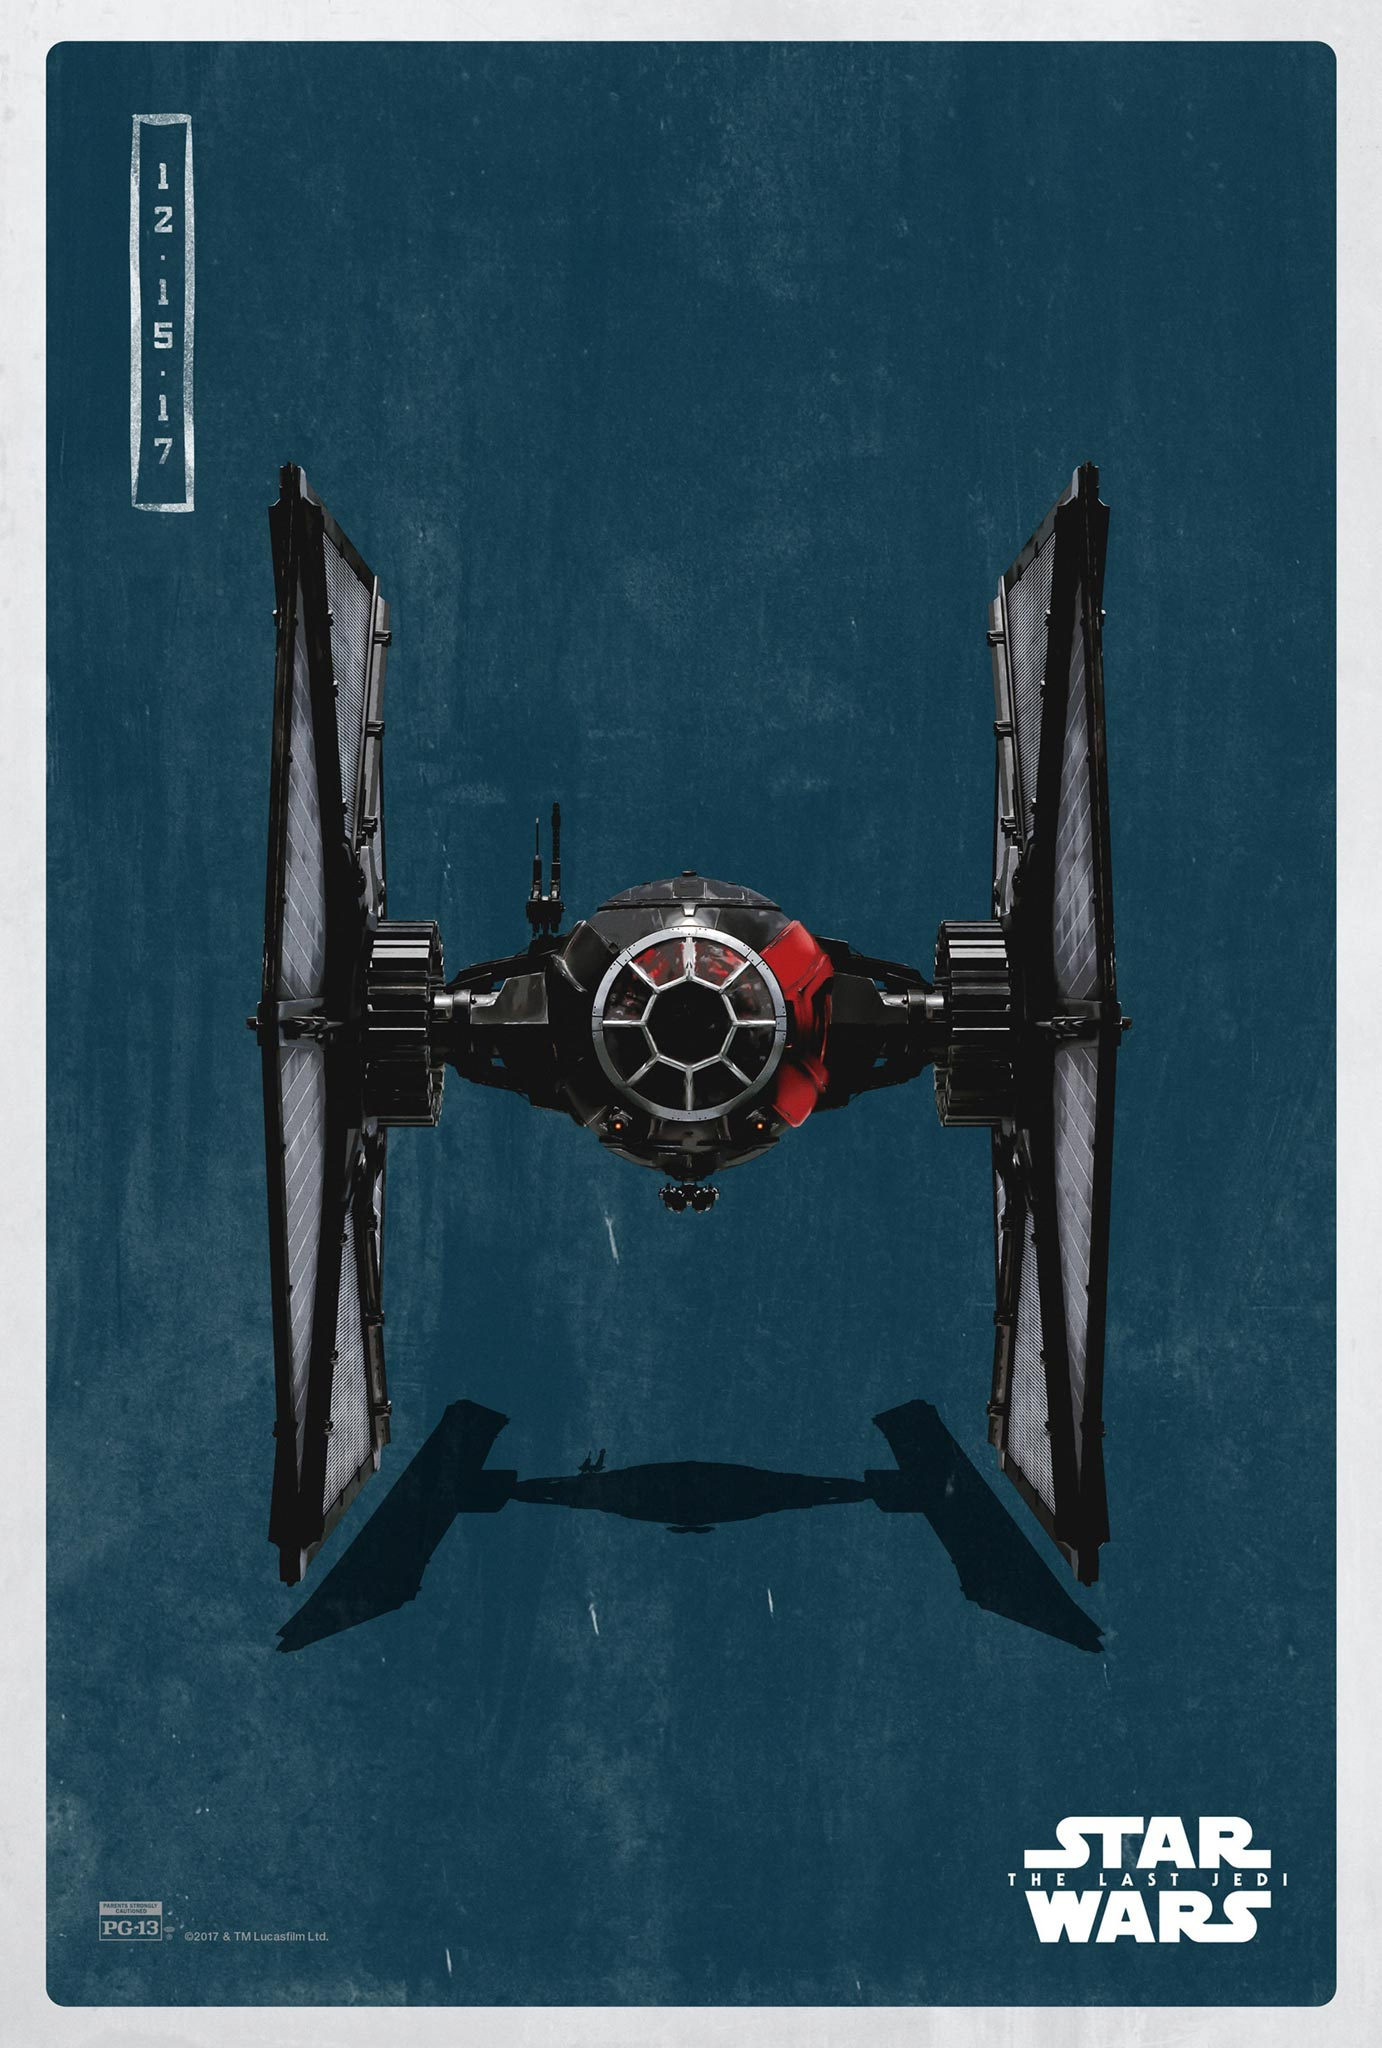 Star Wars: Episode VIII - The Last Jedi Poster #13